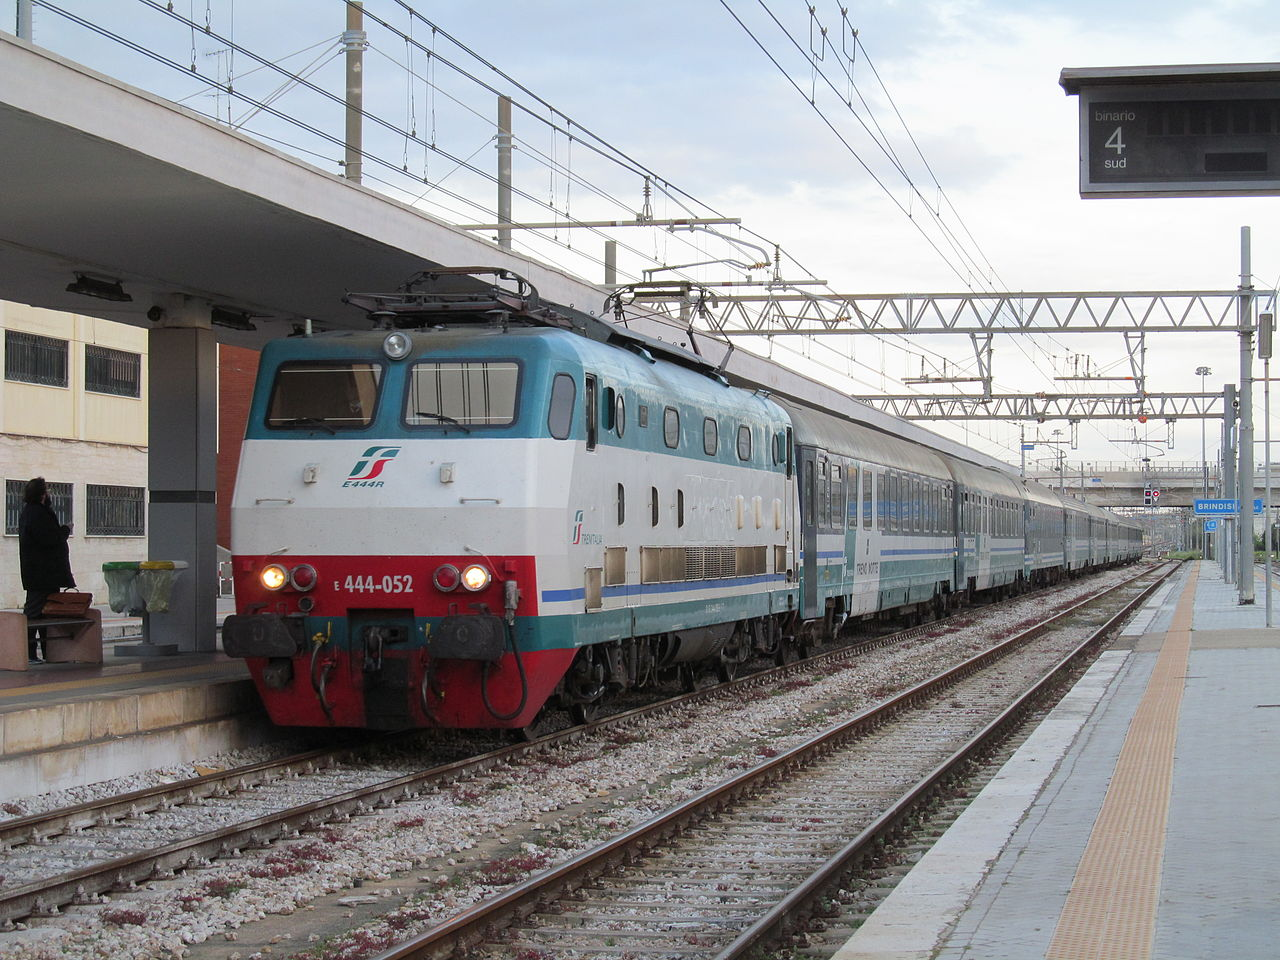 Ferrovie regionali isolate - Photo credit: Chris0693